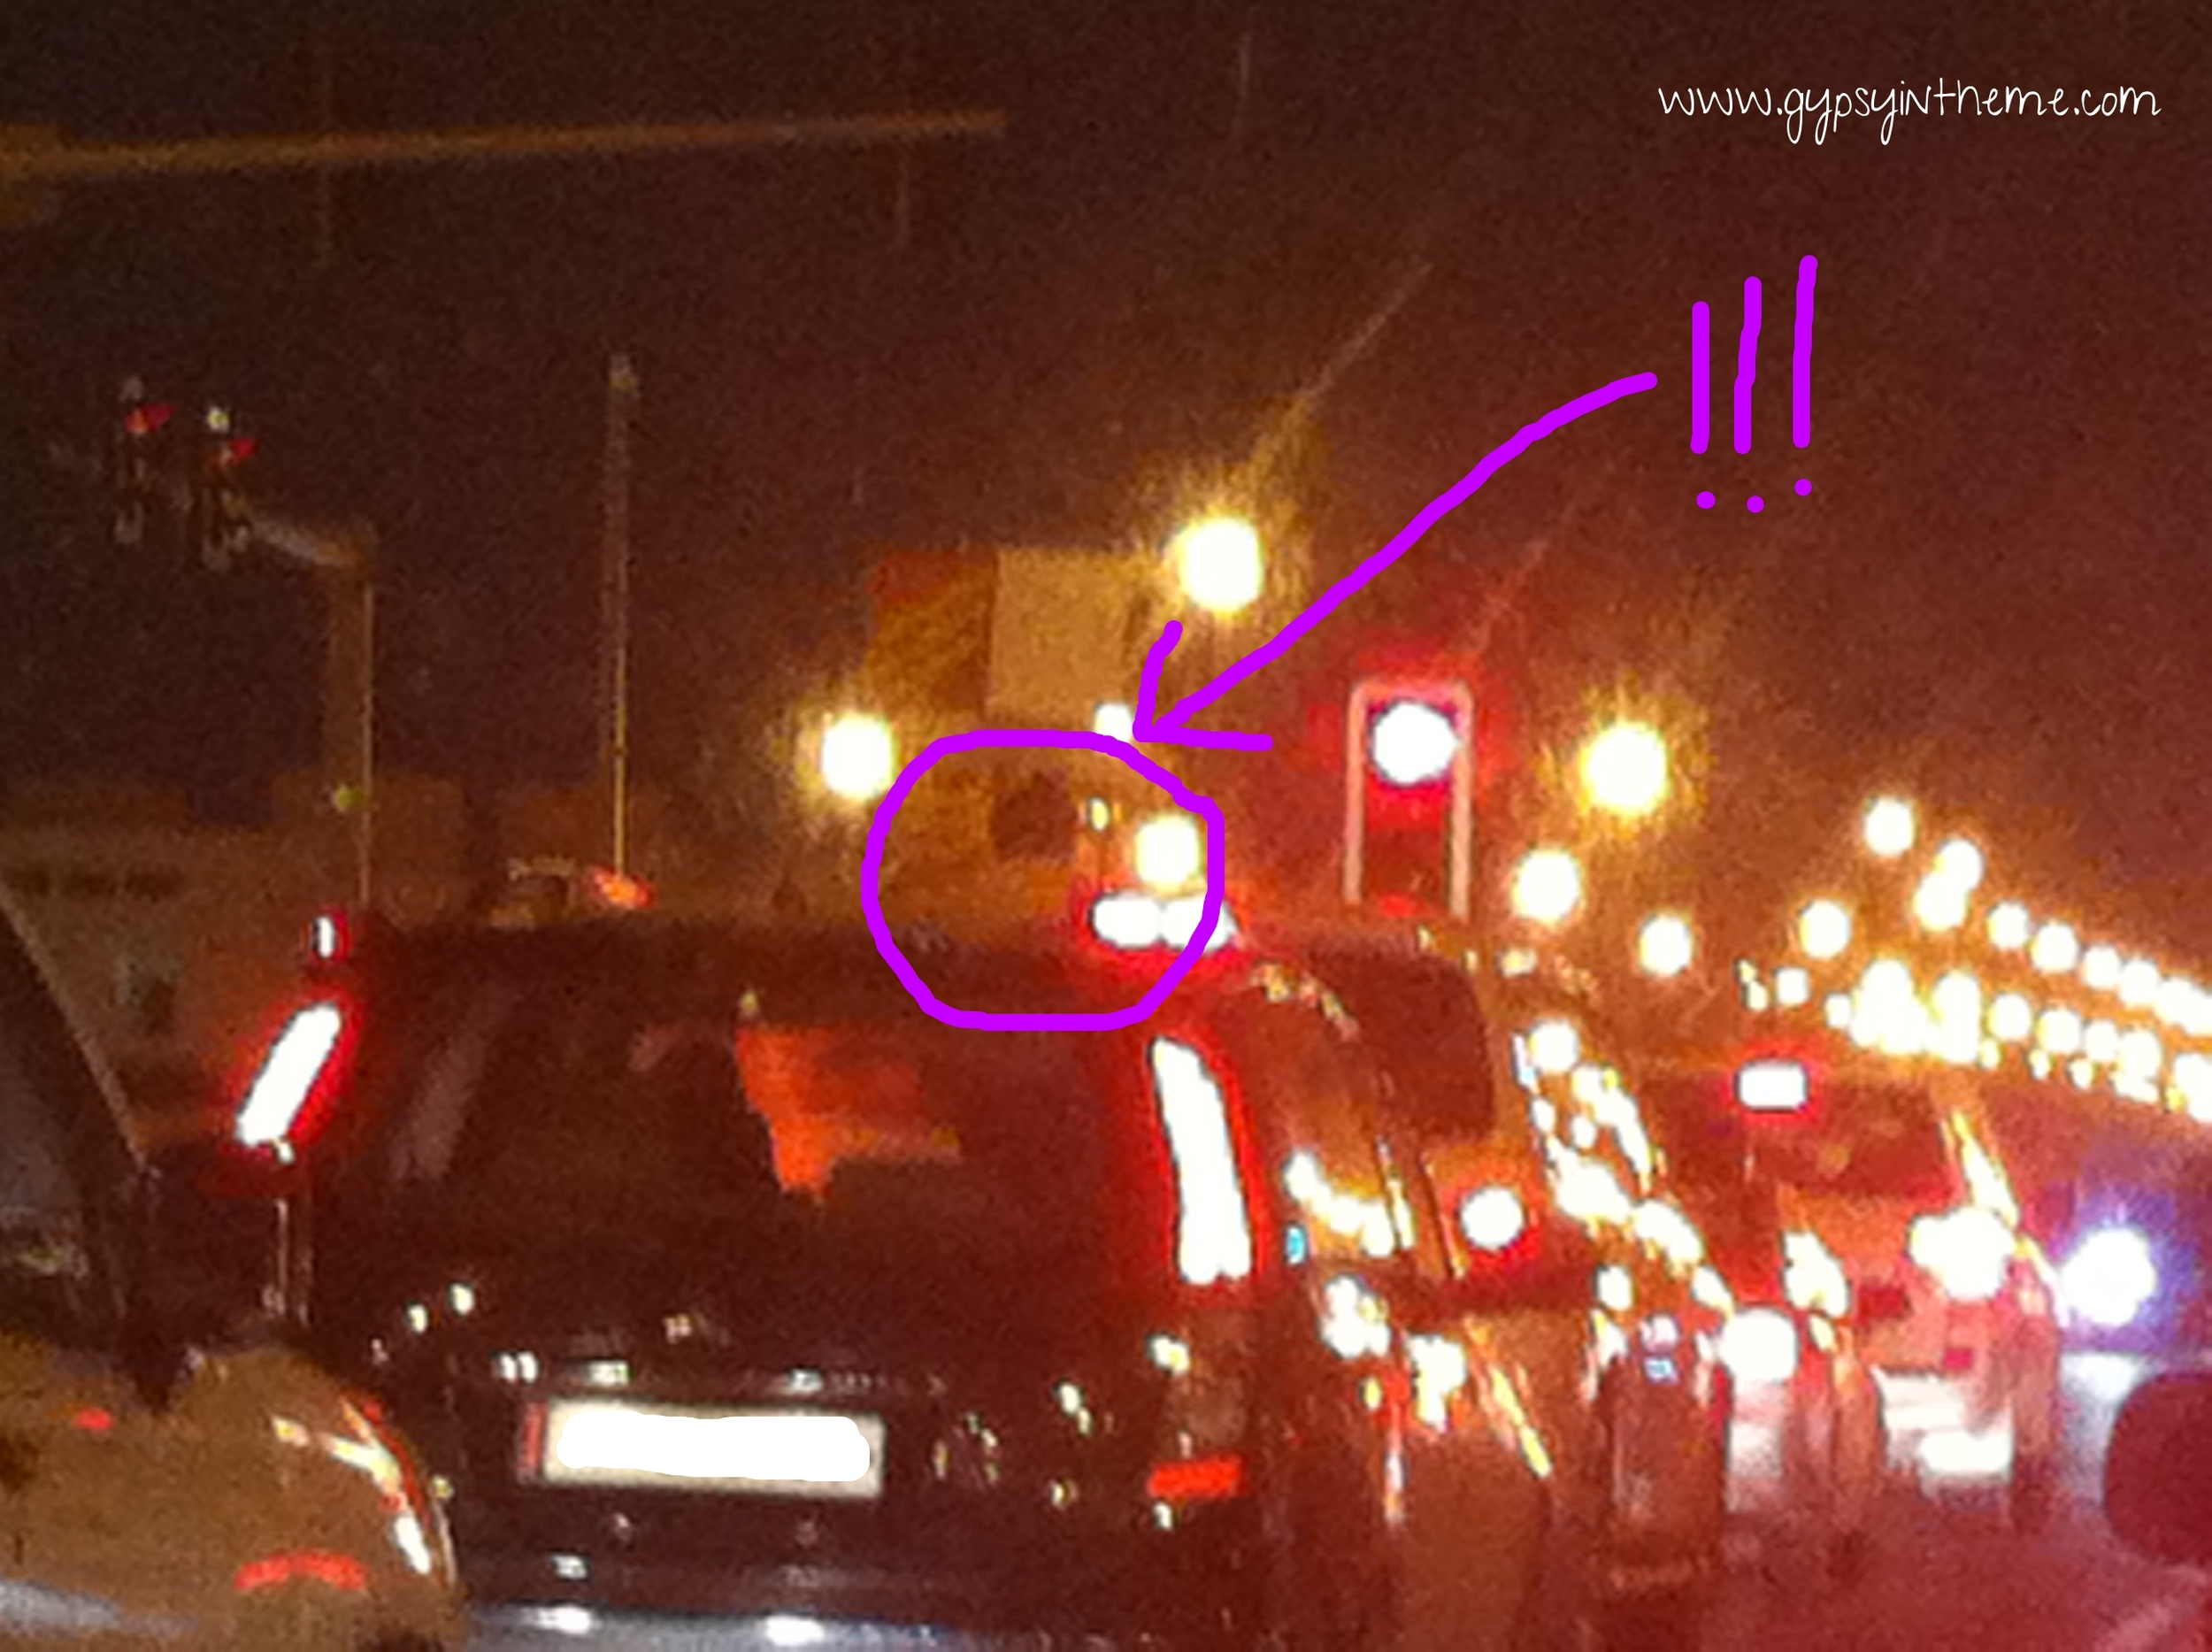 Hard to see in the image … but this was a child of about 3 climbing out the sunroof in traffic directly in front of me.